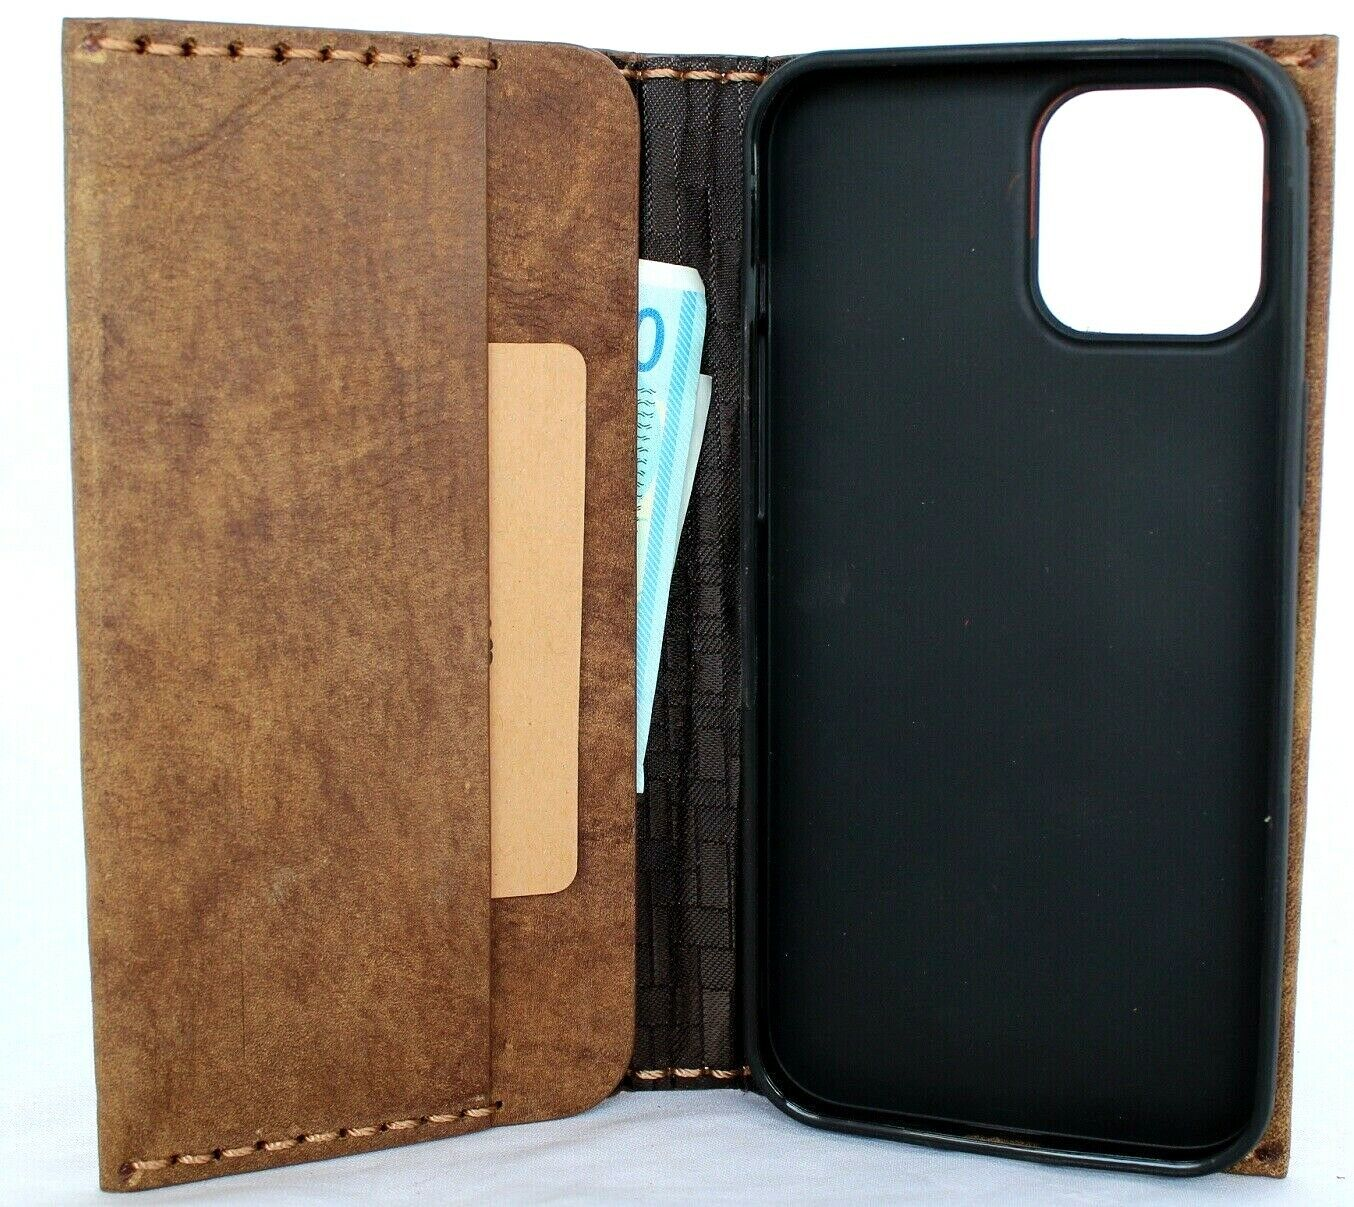 Image 81 - Genuine Full Grain Leather Case For Apple iPhone 11 Pro Max Wallet Cover Book De